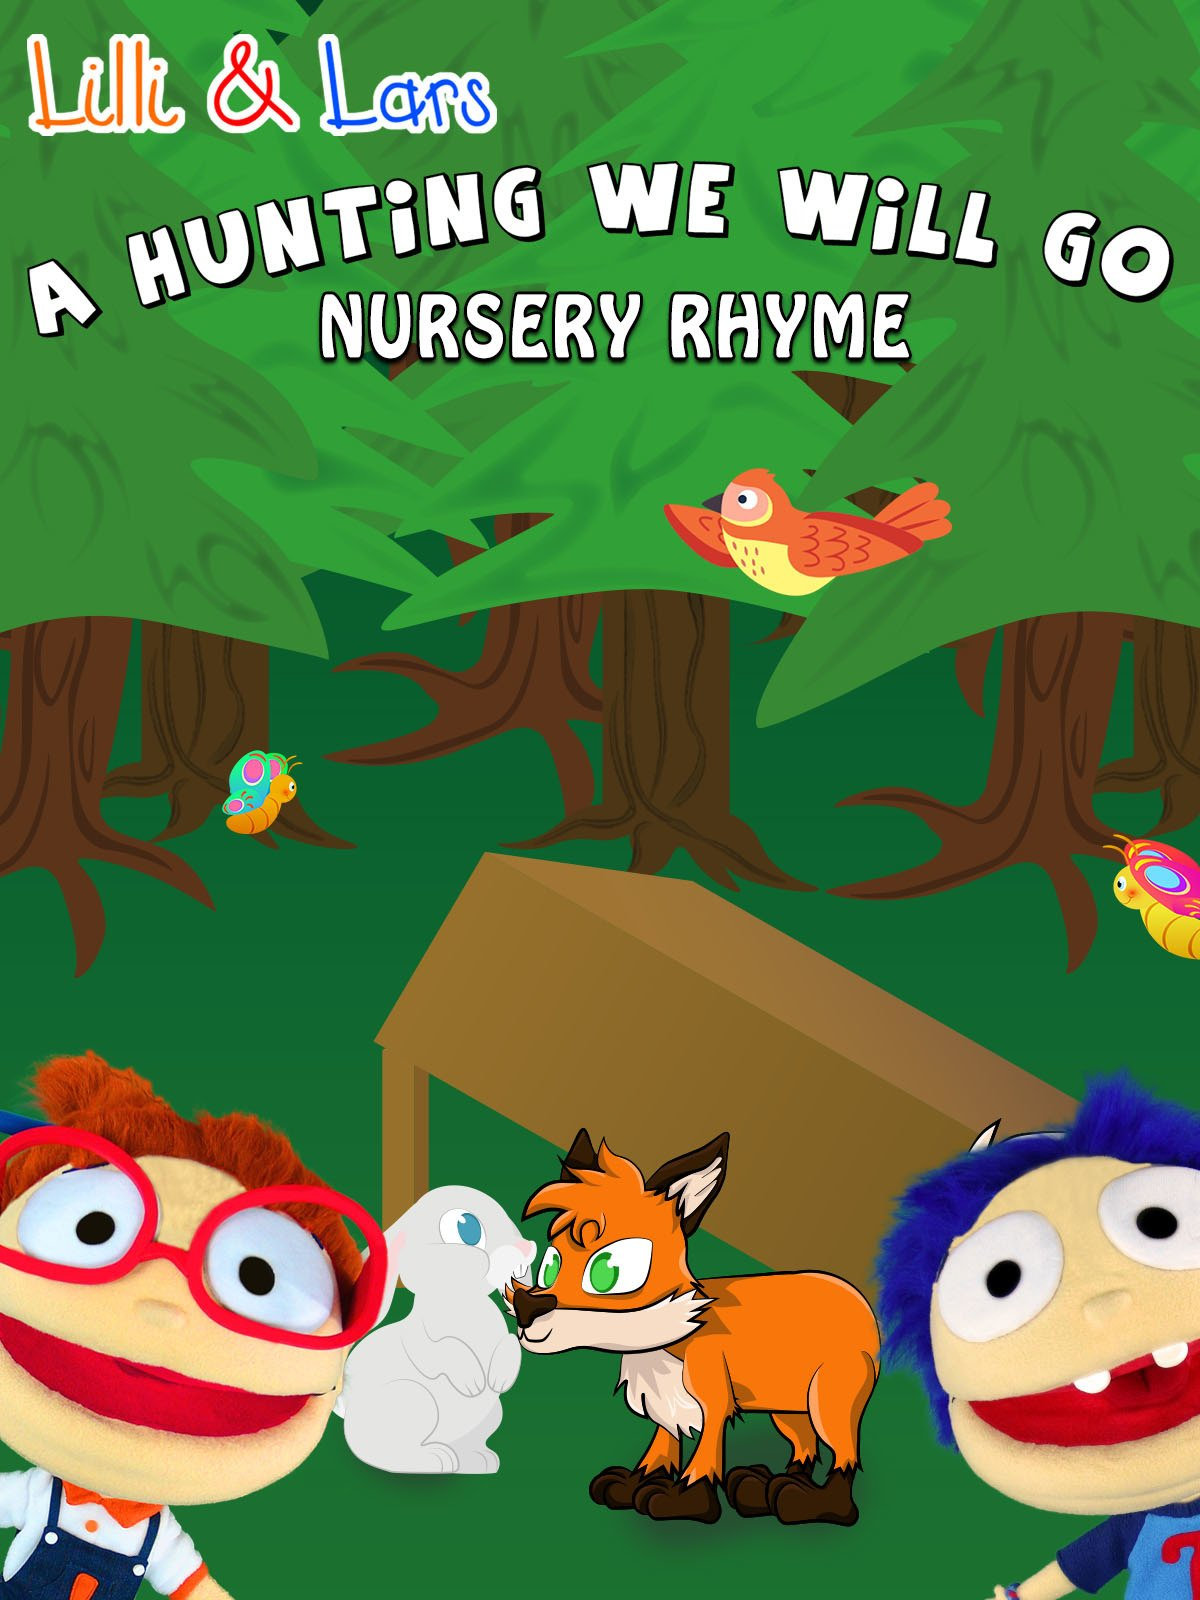 Clip: A Hunting We Will Go nursery rhyme